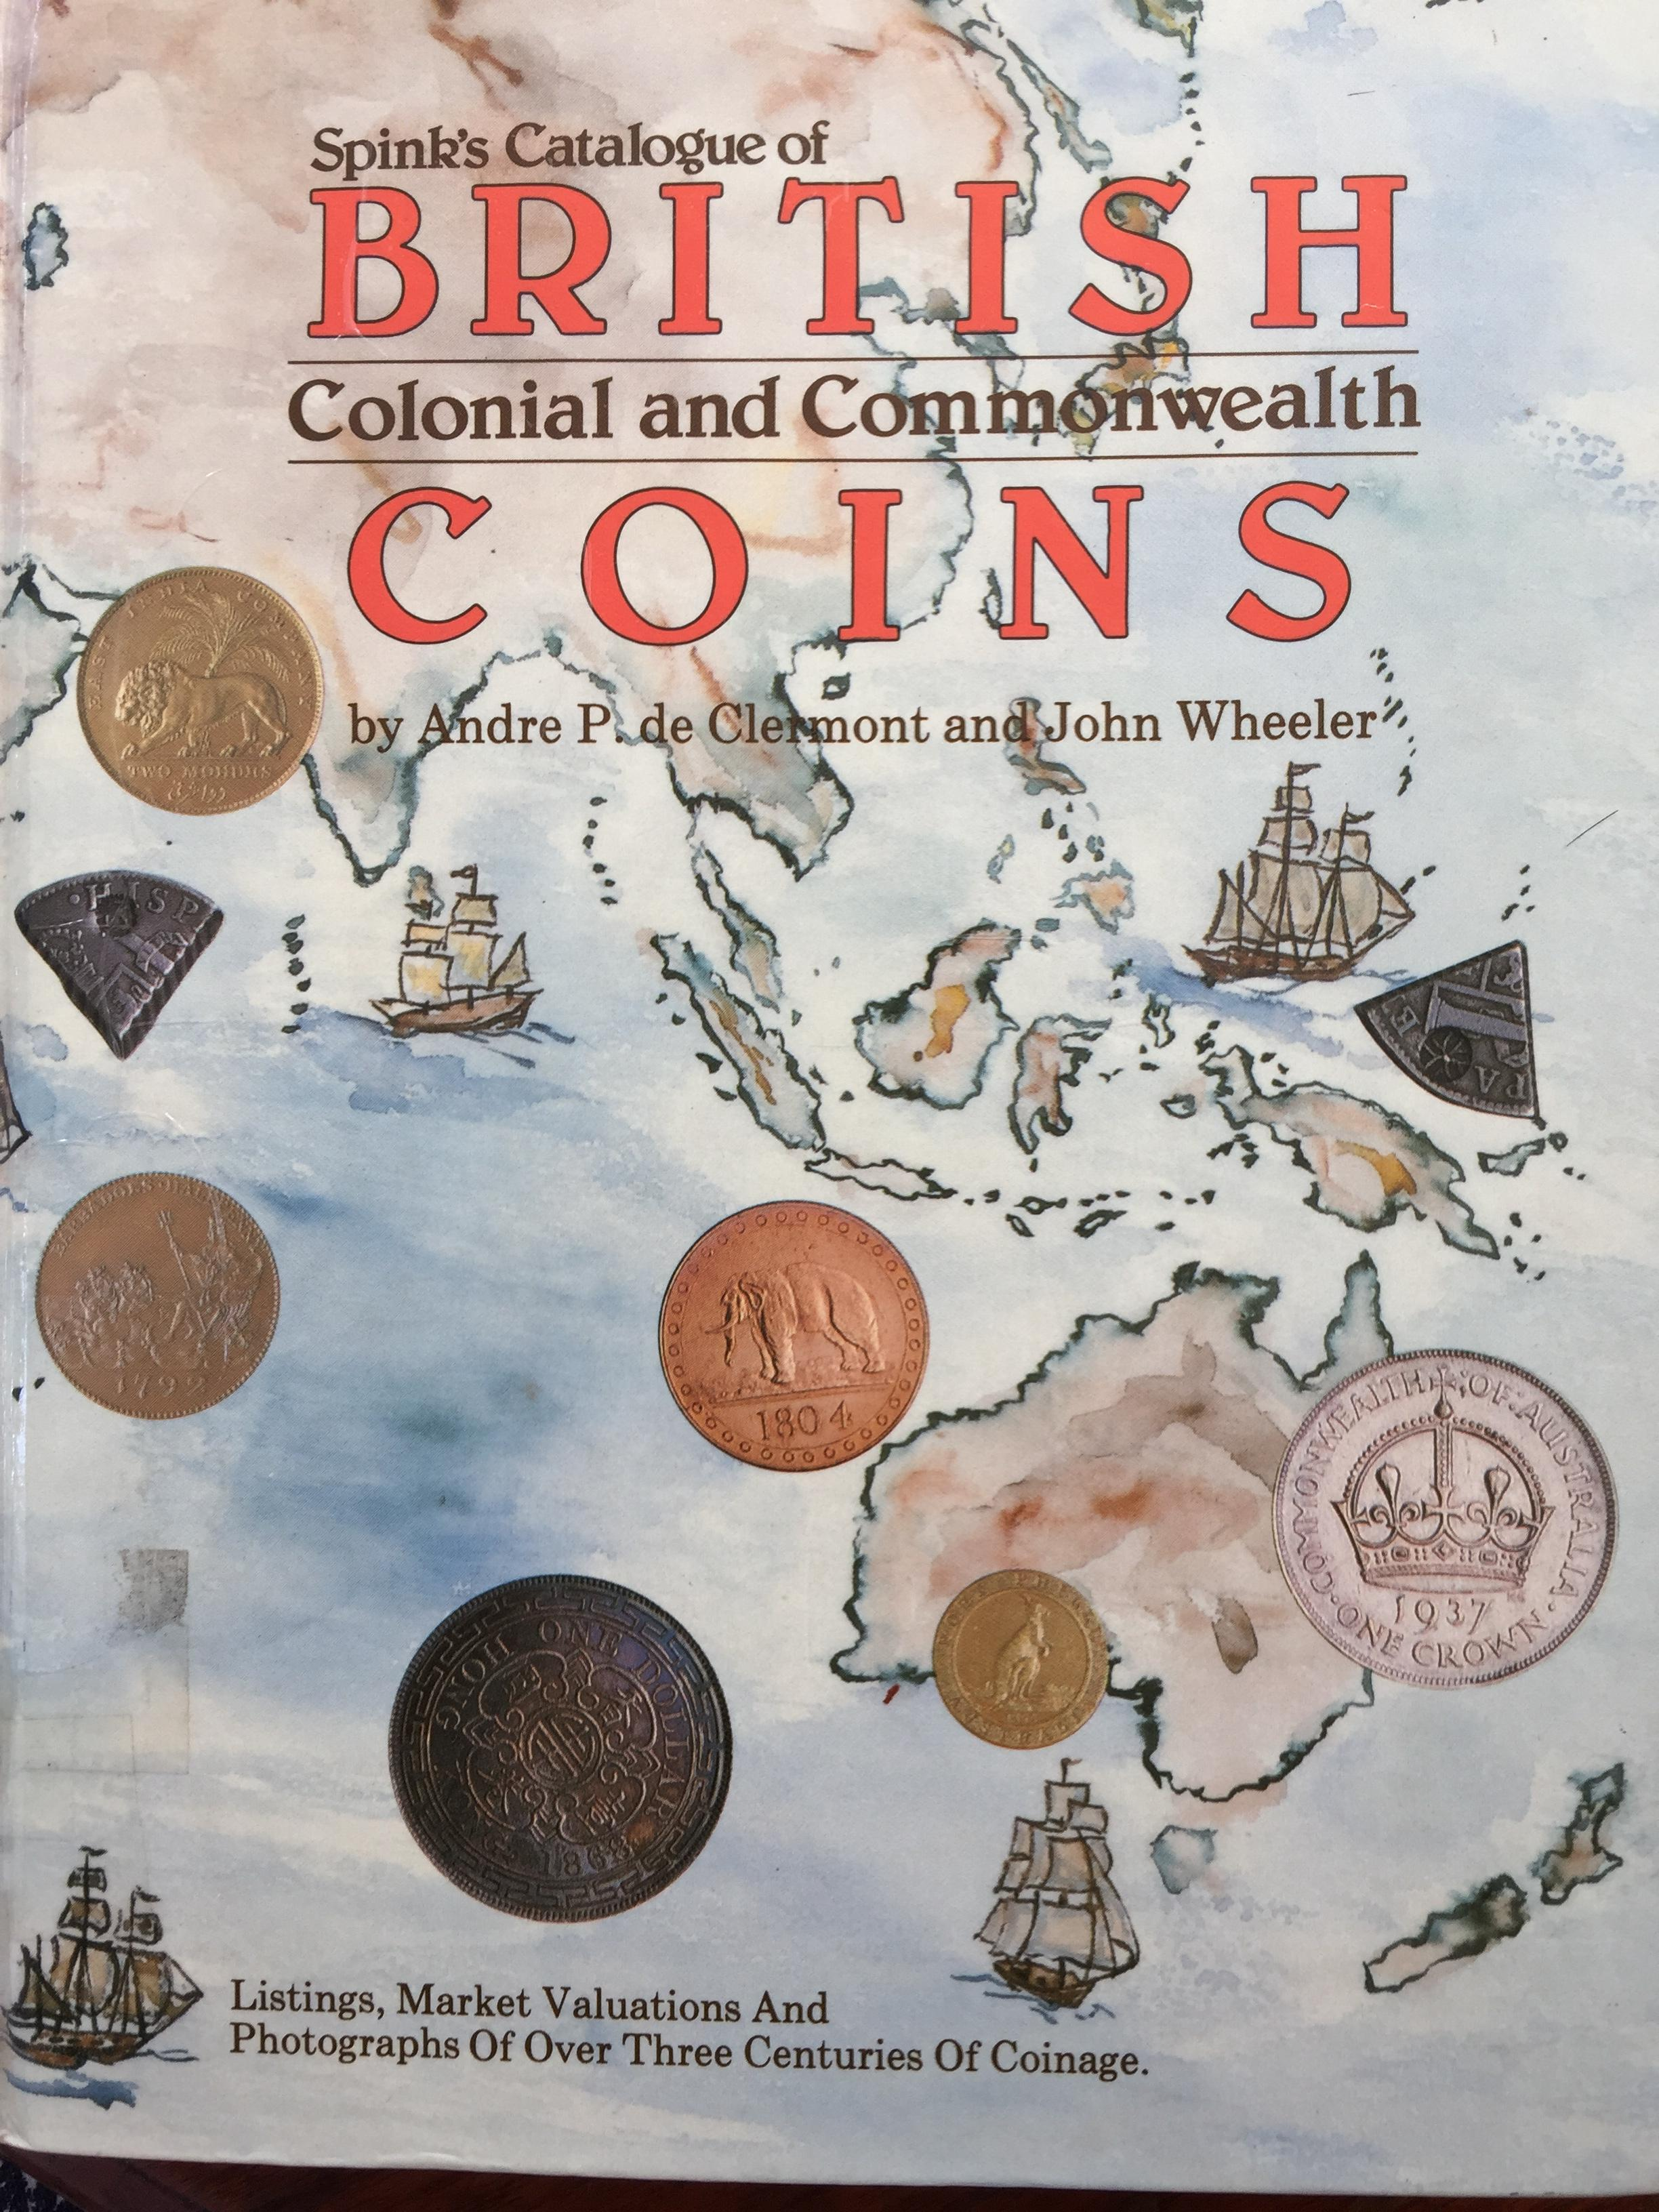 BRITISH COINS. Spink's Catalogue. Colonial and Commonwealth. By Andre P. de Clermont and. John Wheeler